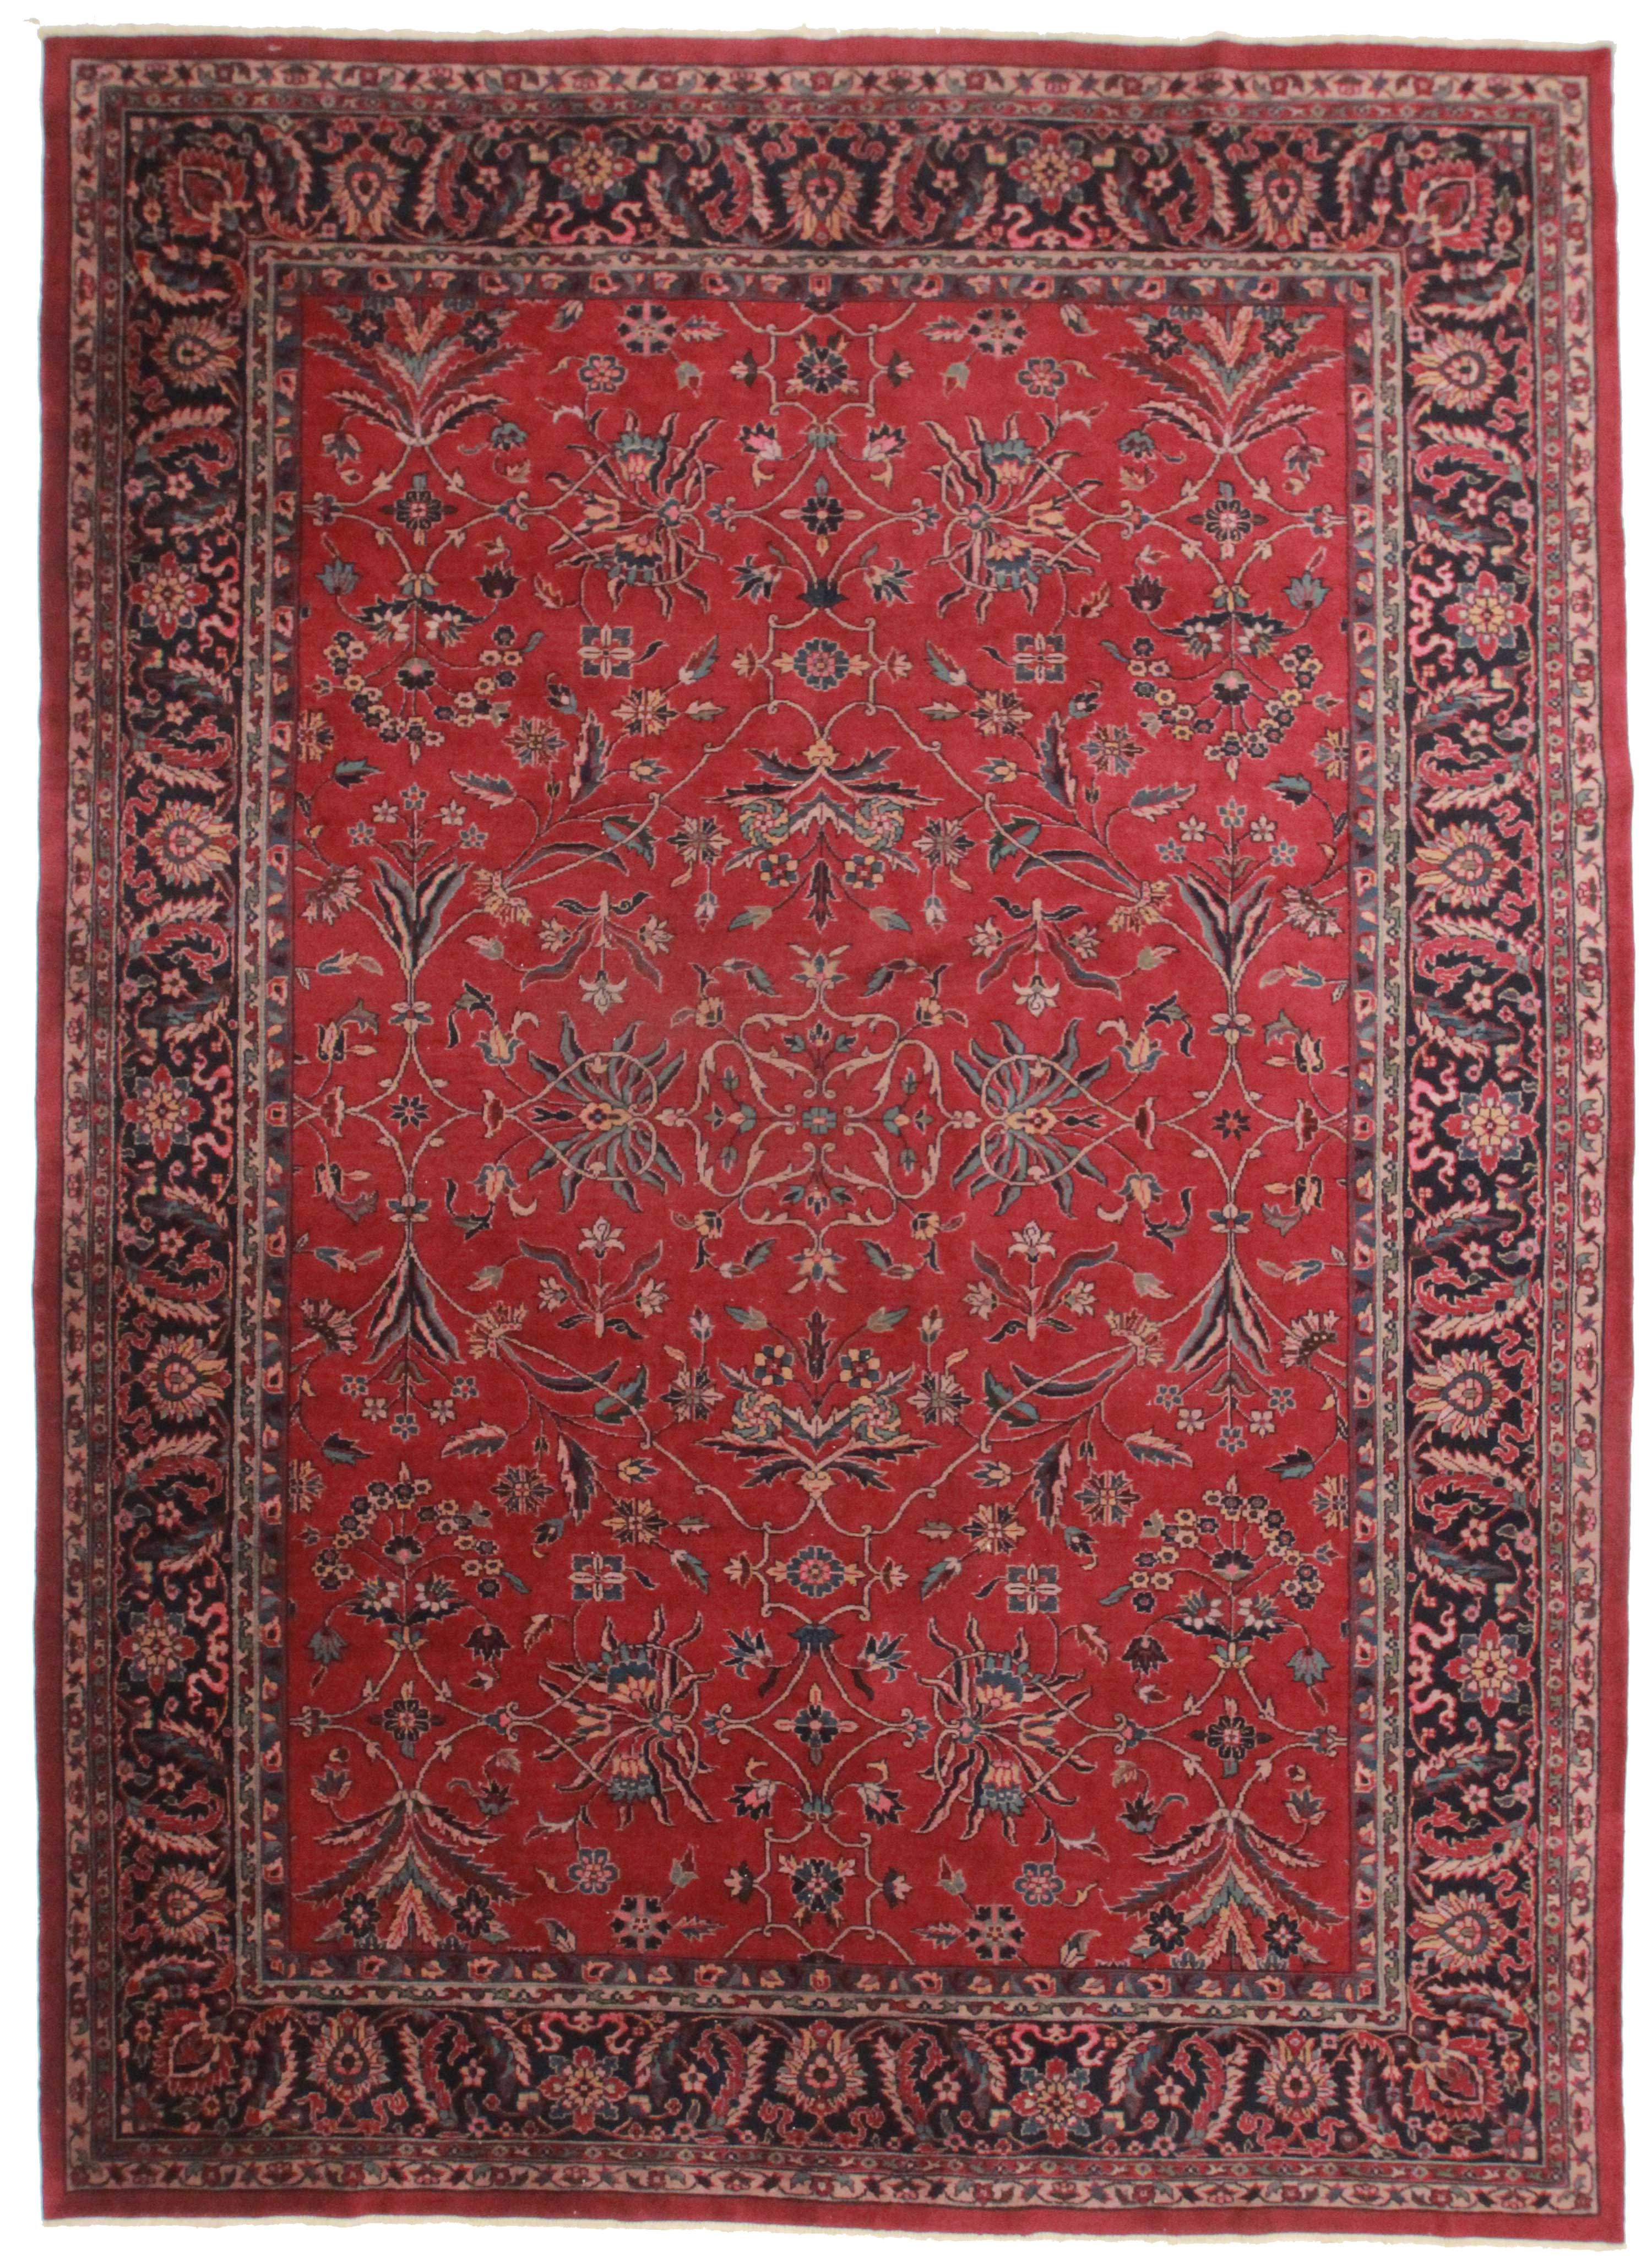 10 X 14 Area Rugs 10 X 14 Antique Sparta Rug 8059 Exclusive Oriental Rugs